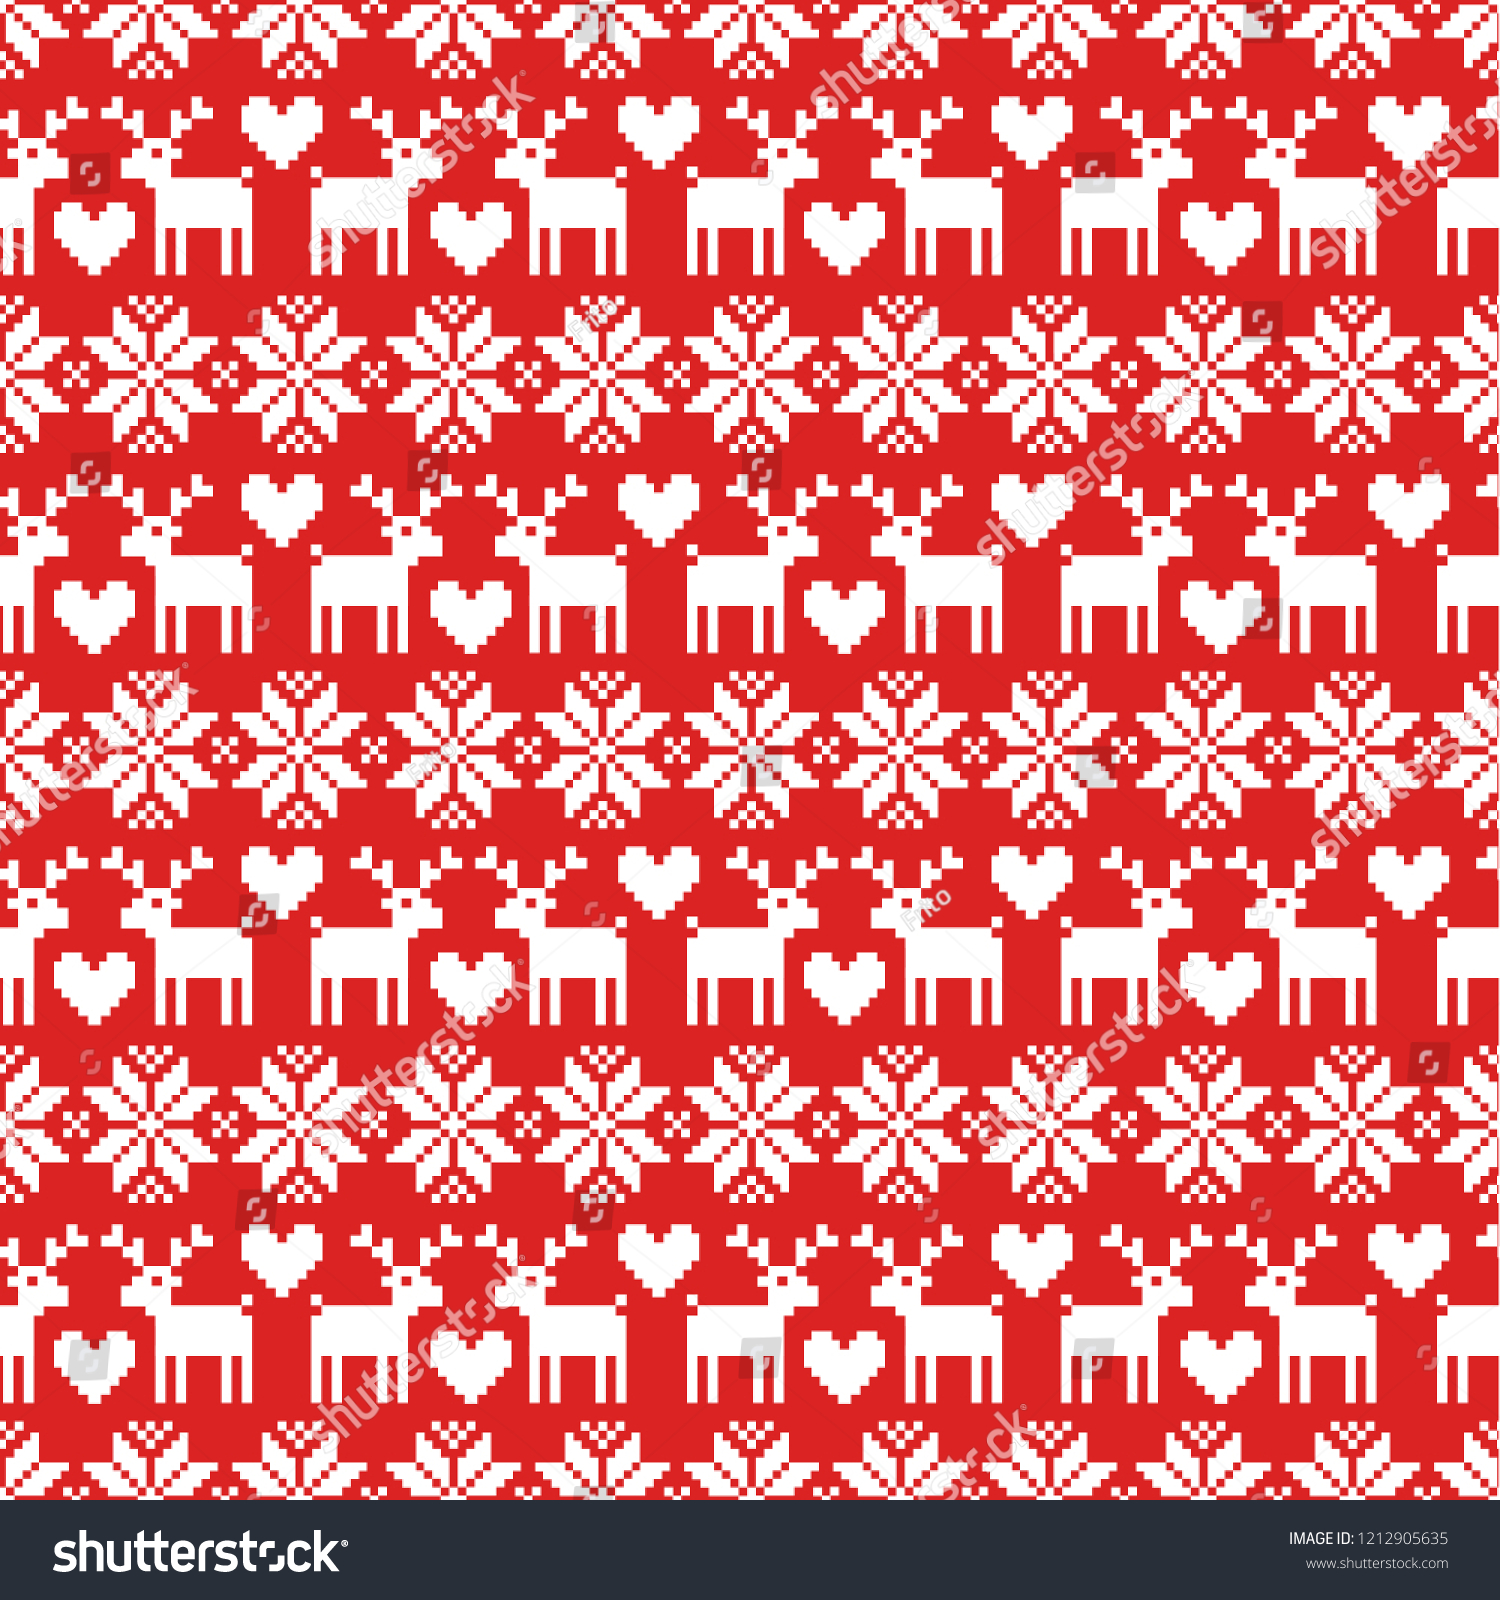 bcd414210a200 Vector seamless Christmas sweater pattern with deers on red background.  Pefrect for wrapping paper or